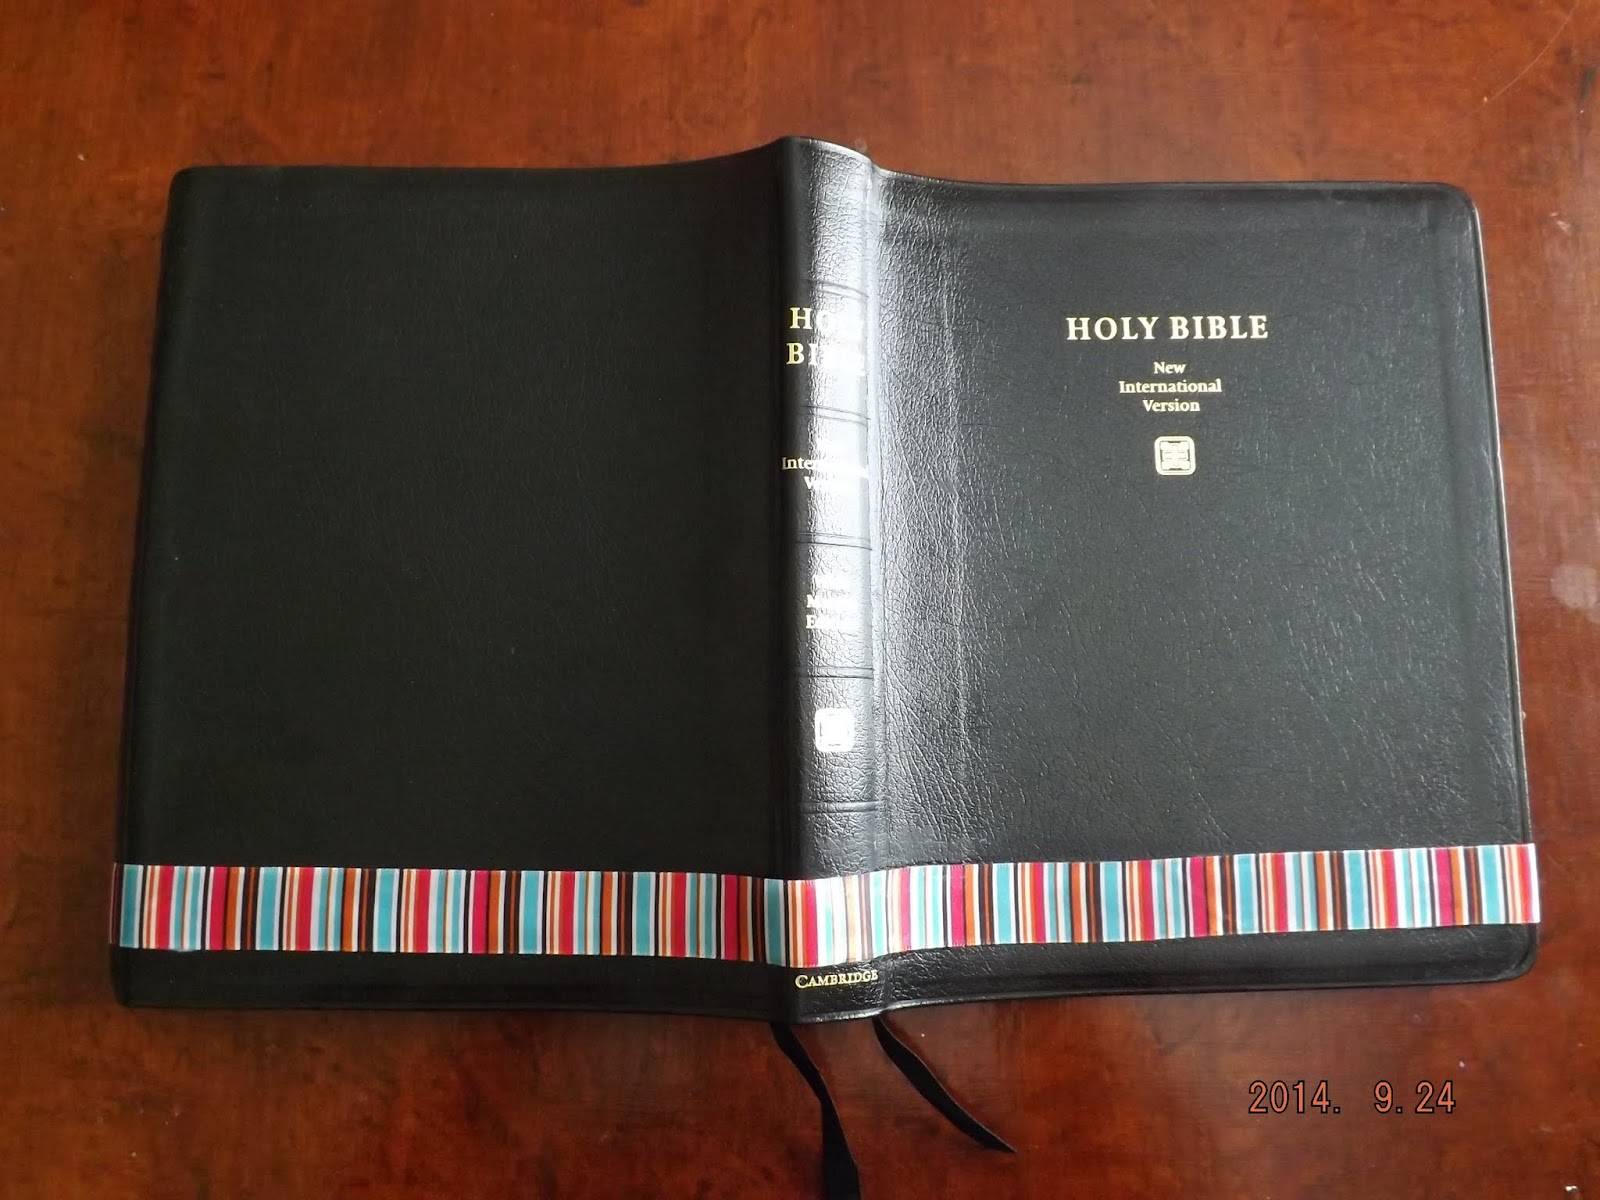 Using ribbon to cover an inscribed Cambridge Wide Margin Bible that will be used for journaling..